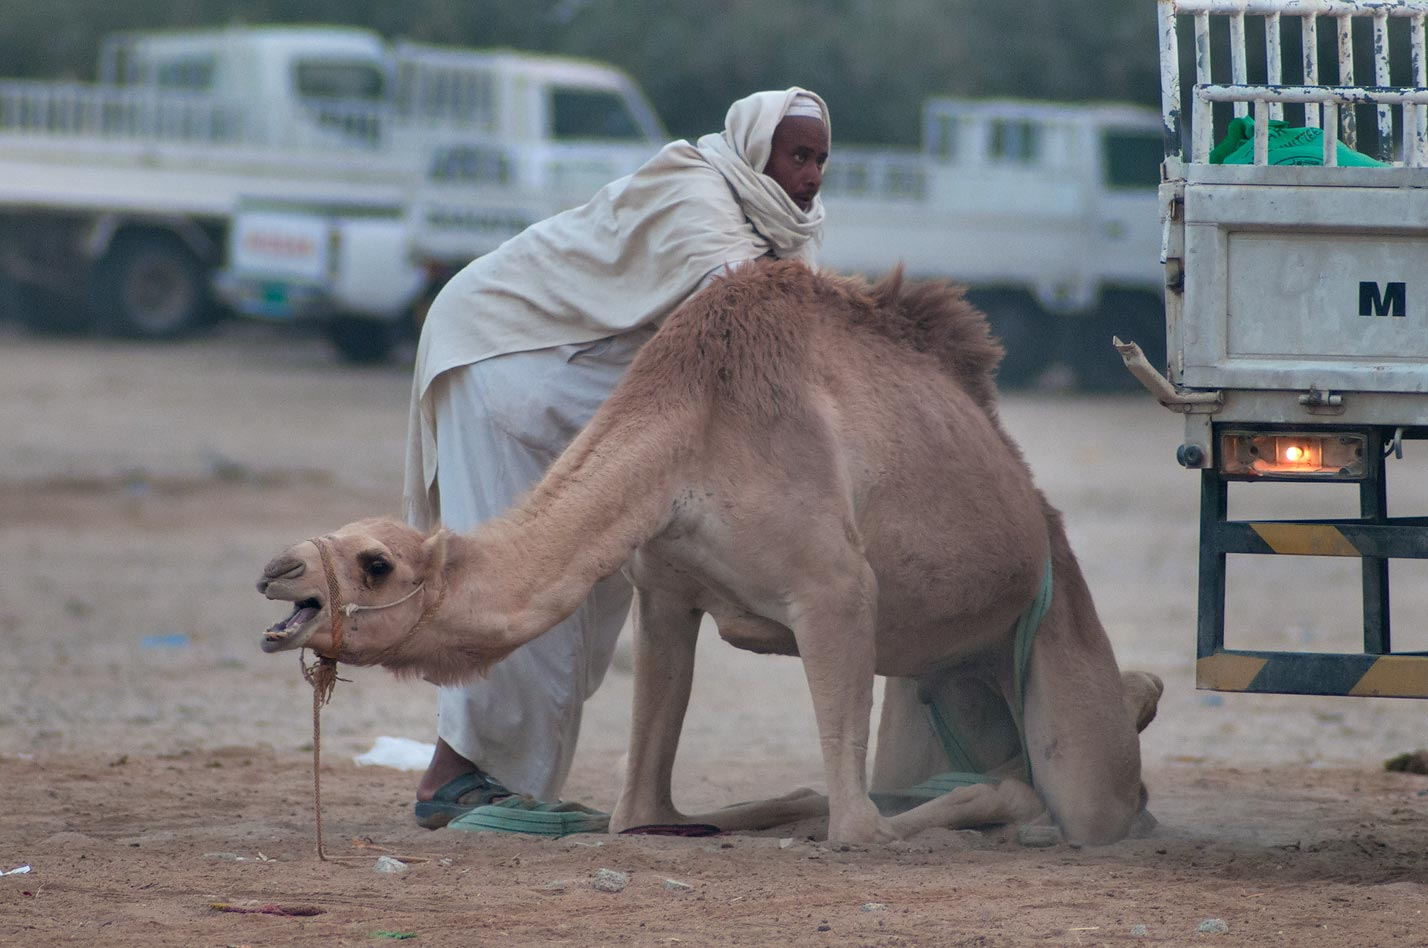 Forcing a camel to kneel in Camel Market (Souq), Wholesale Markets area. Doha, Qatar